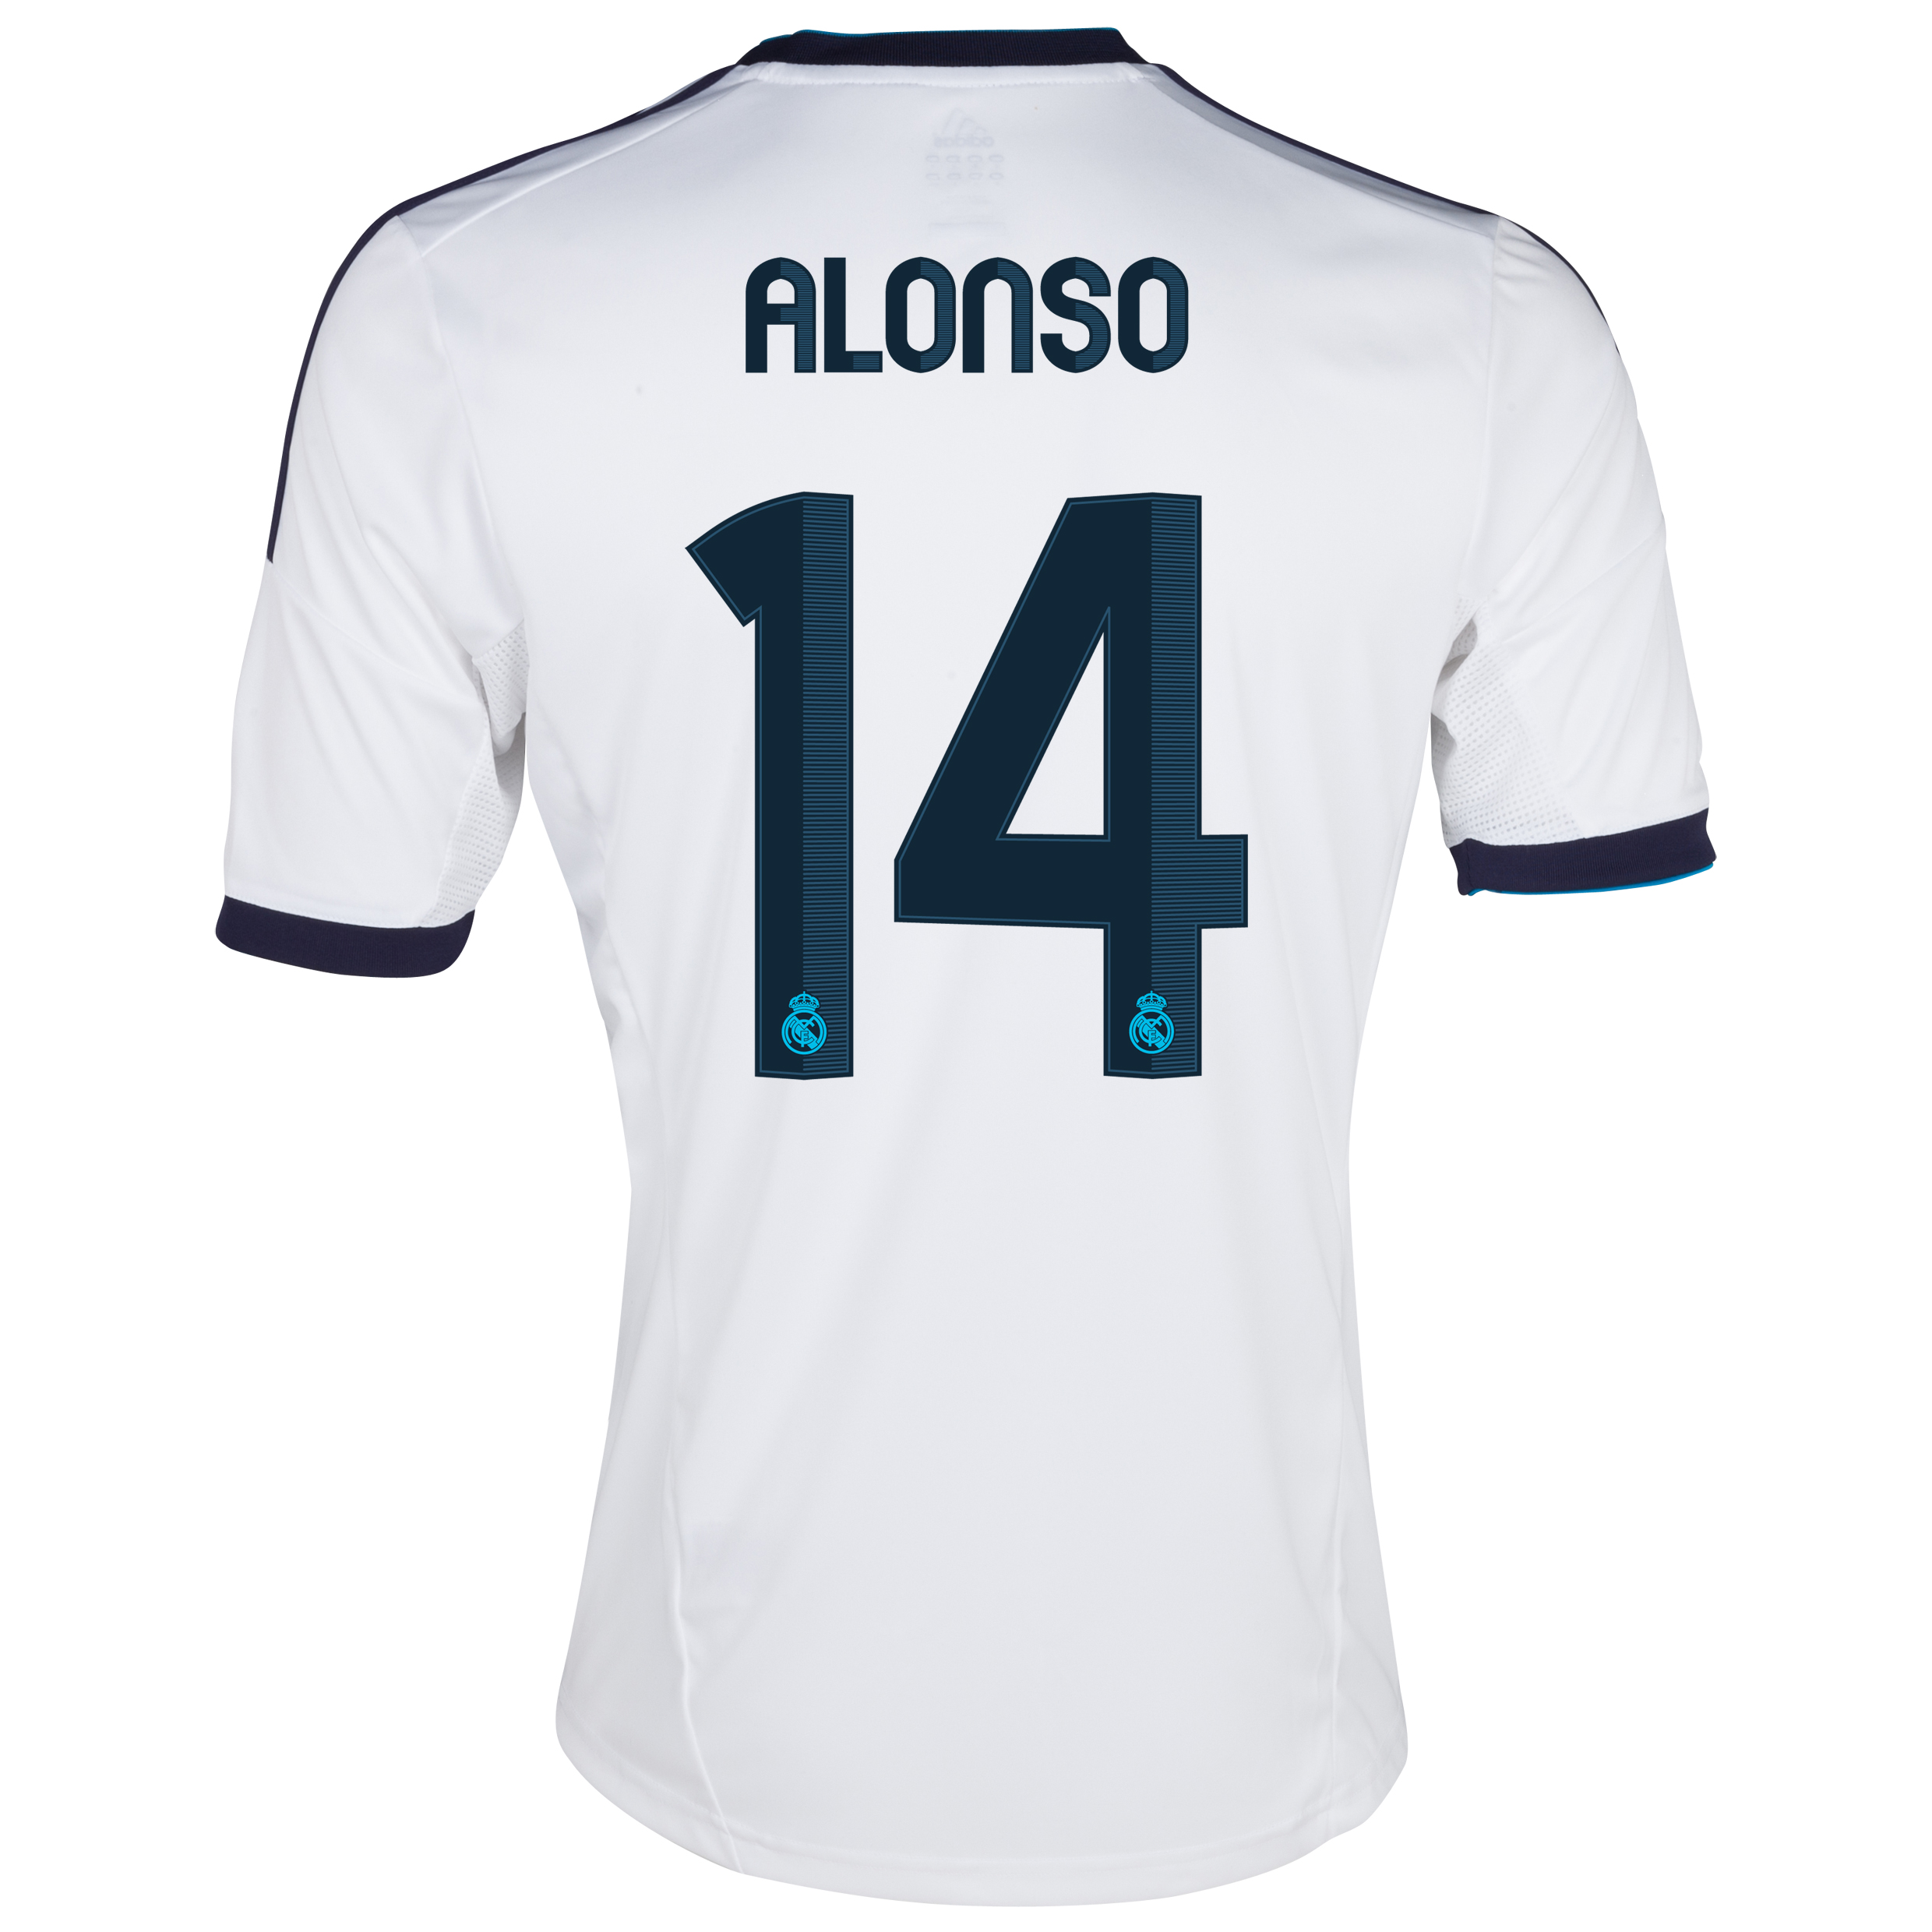 Real Madrid Home Shirt 2012/13 with Alonso 14 printing